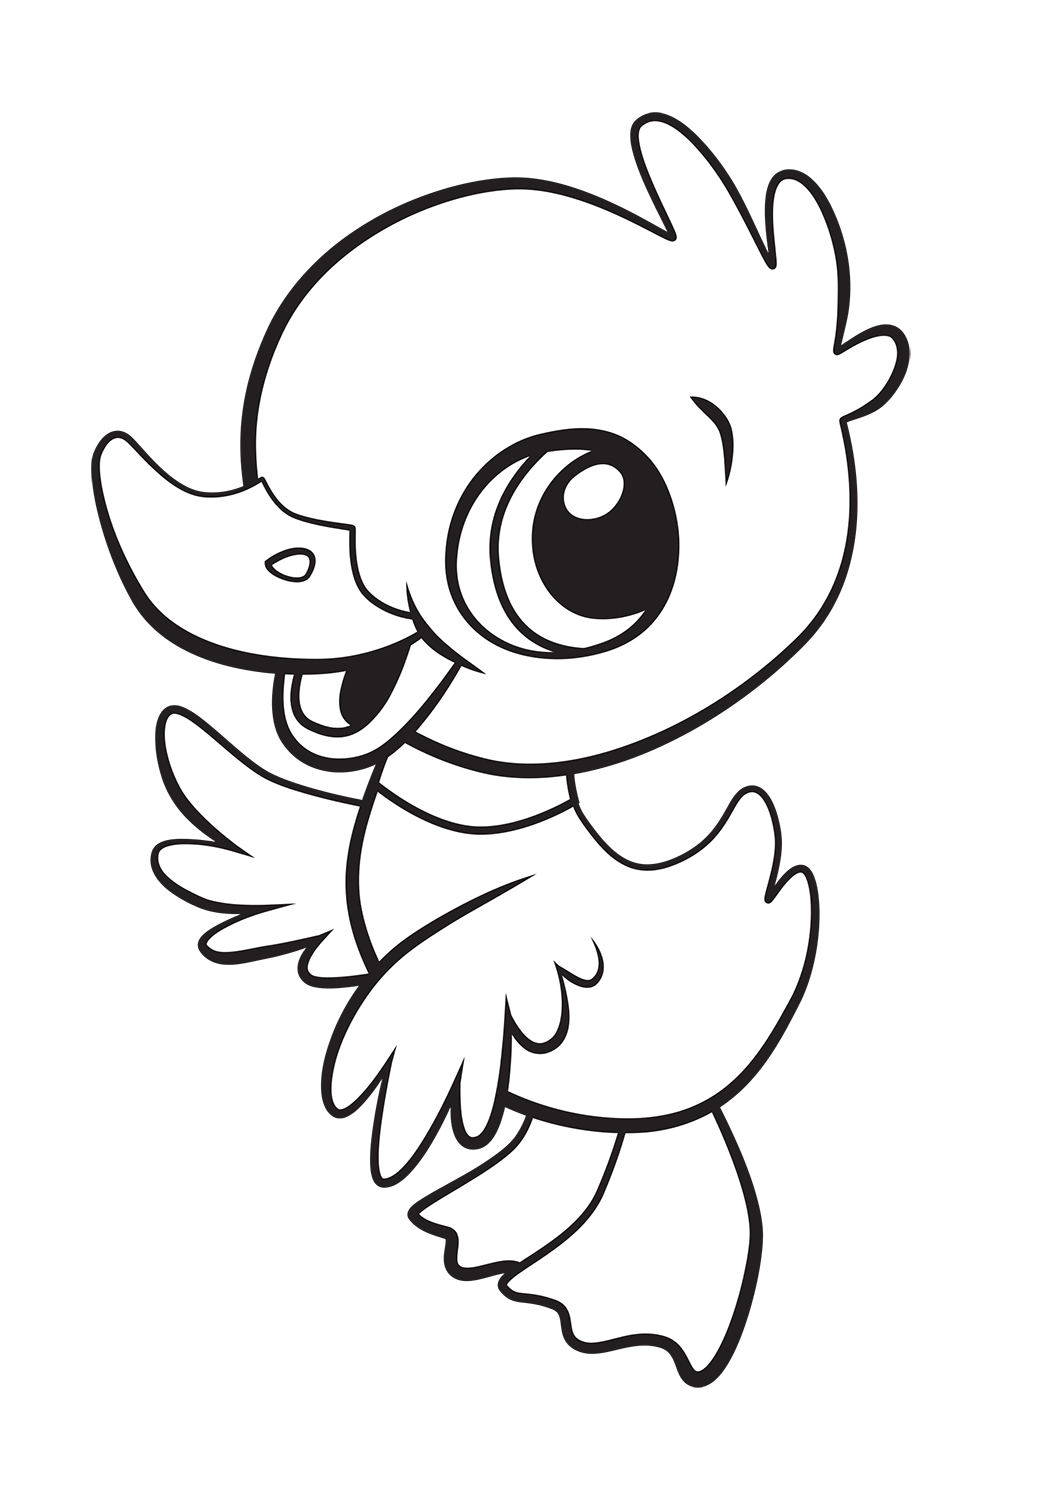 Large Coloring Pages To Download And Print For Free